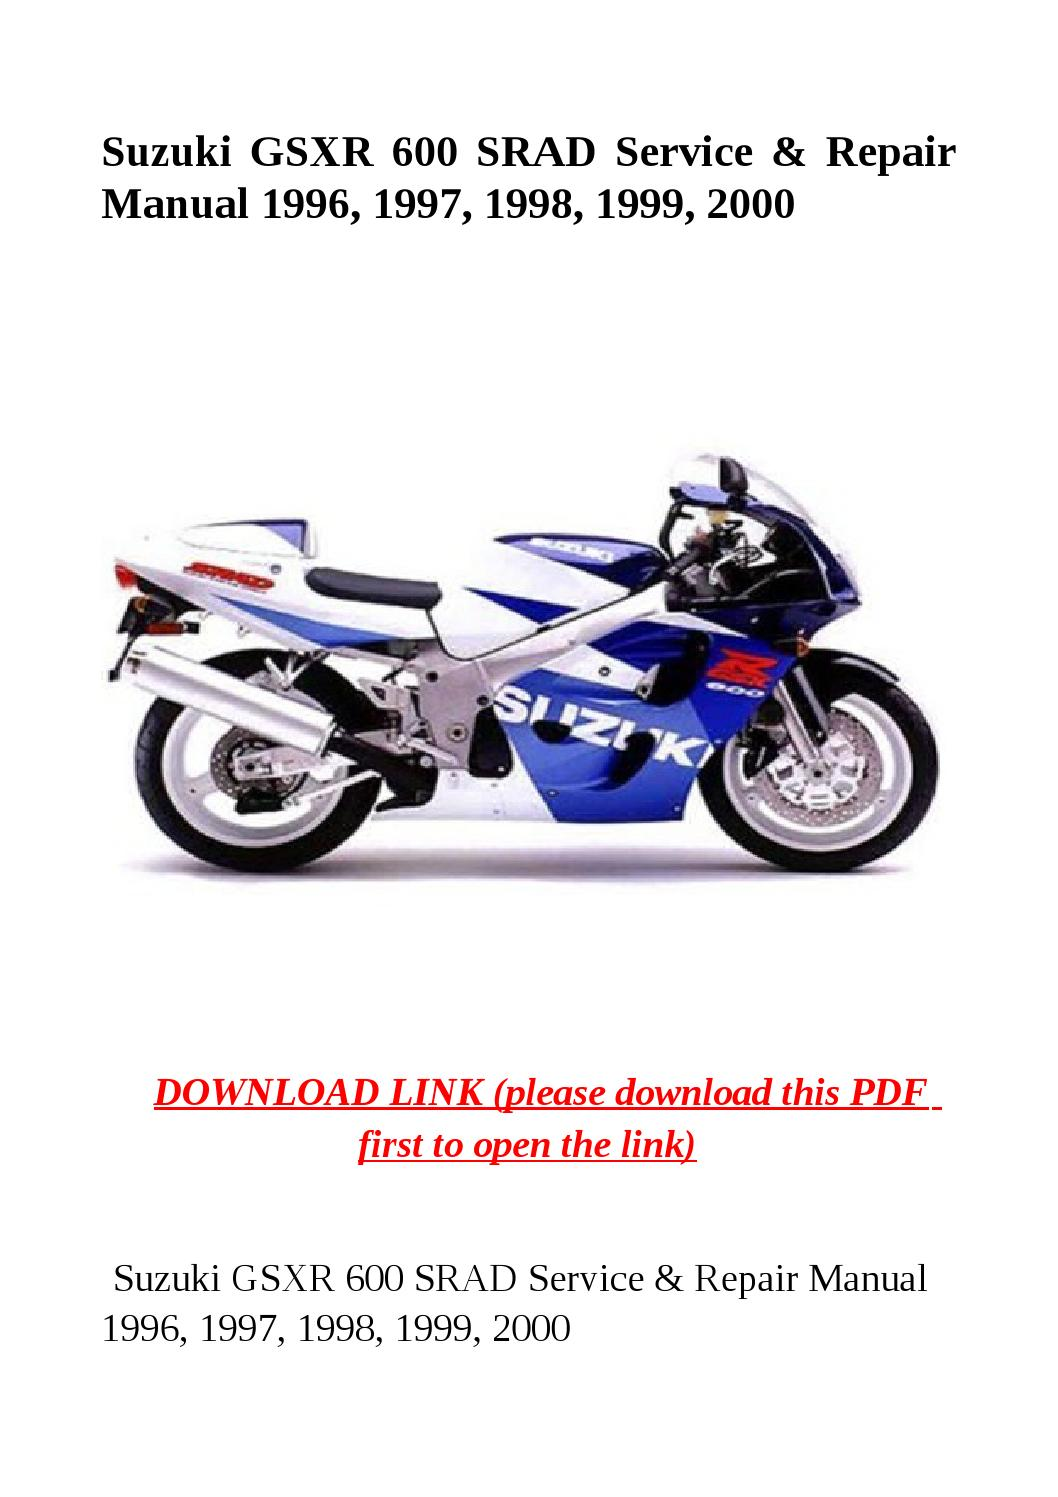 Suzuki gsxr 600 srad service & repair manual 1996, 1997, 1998, 1999, 2000  by herrg - issuu